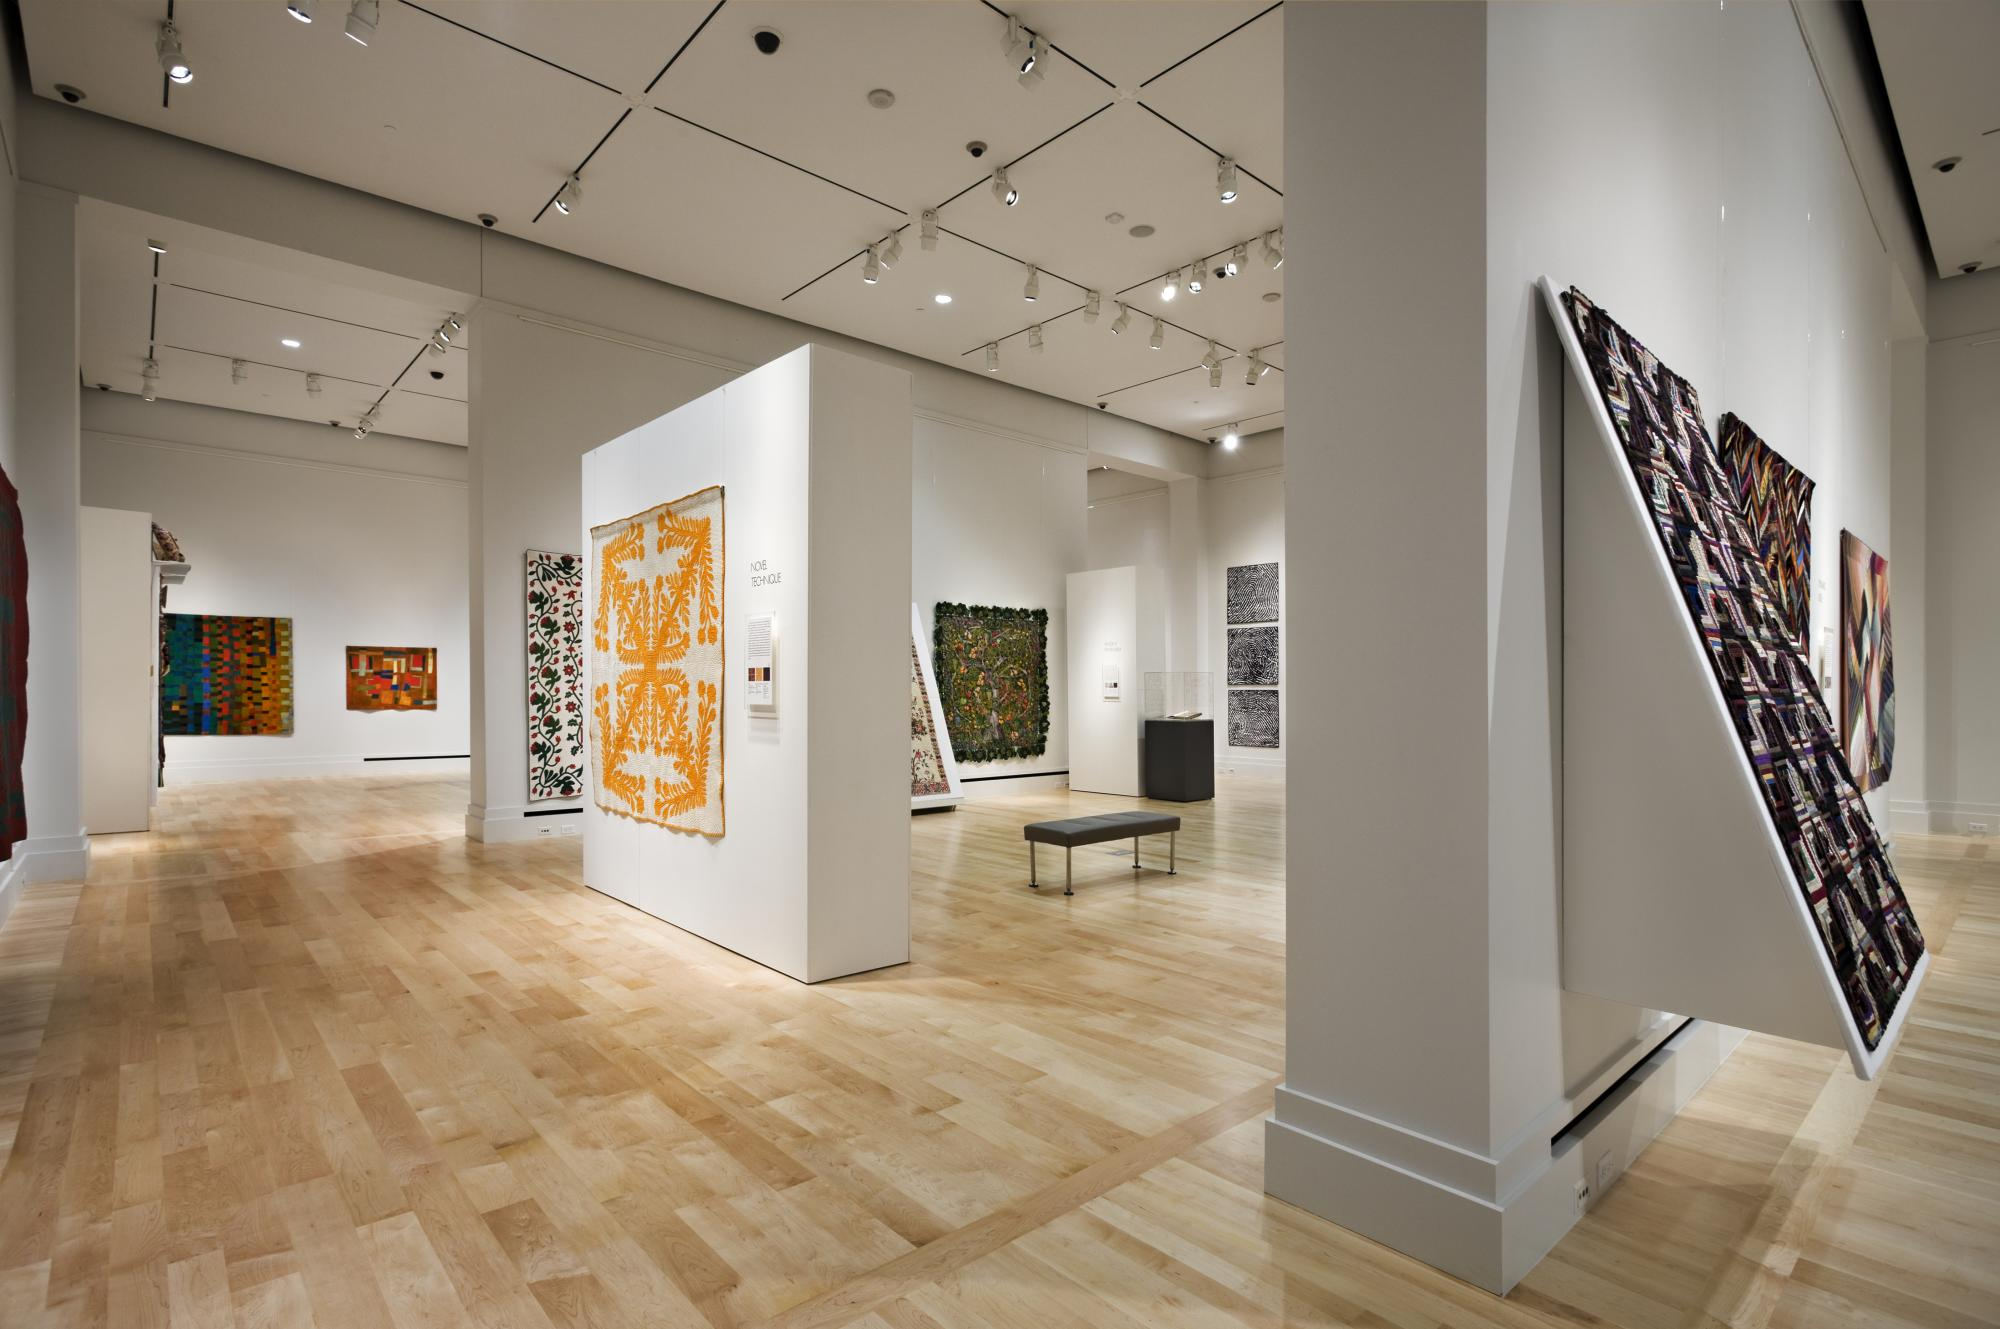 Quilts in Common: Around the Globe & Across Centuries